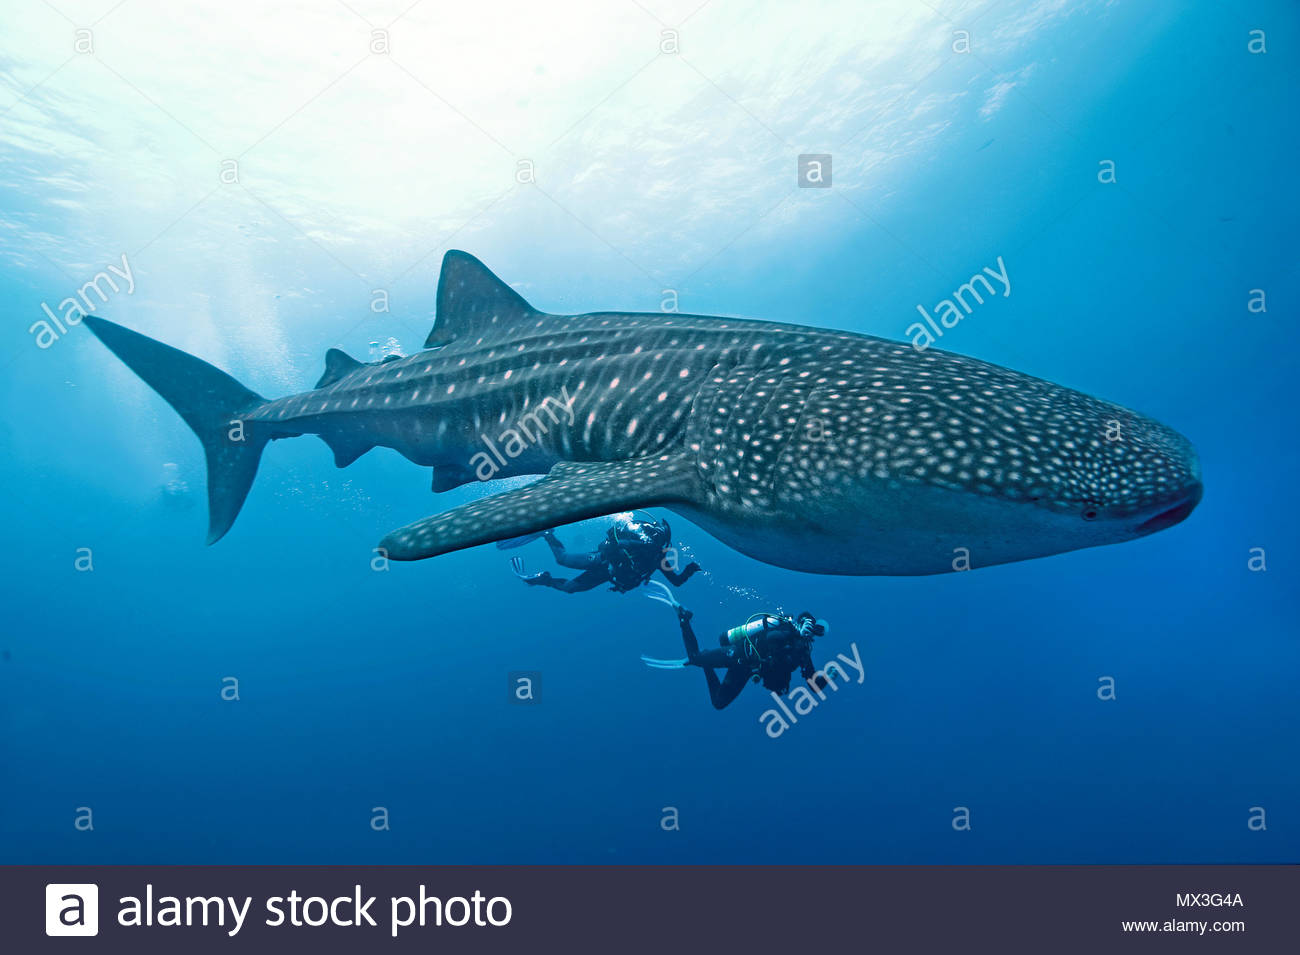 Scuba diver watching a Whale shark (Rhincodon typus), biggest fish of world, Cocos Island, Costa Rica, Central America, America - Stock Image